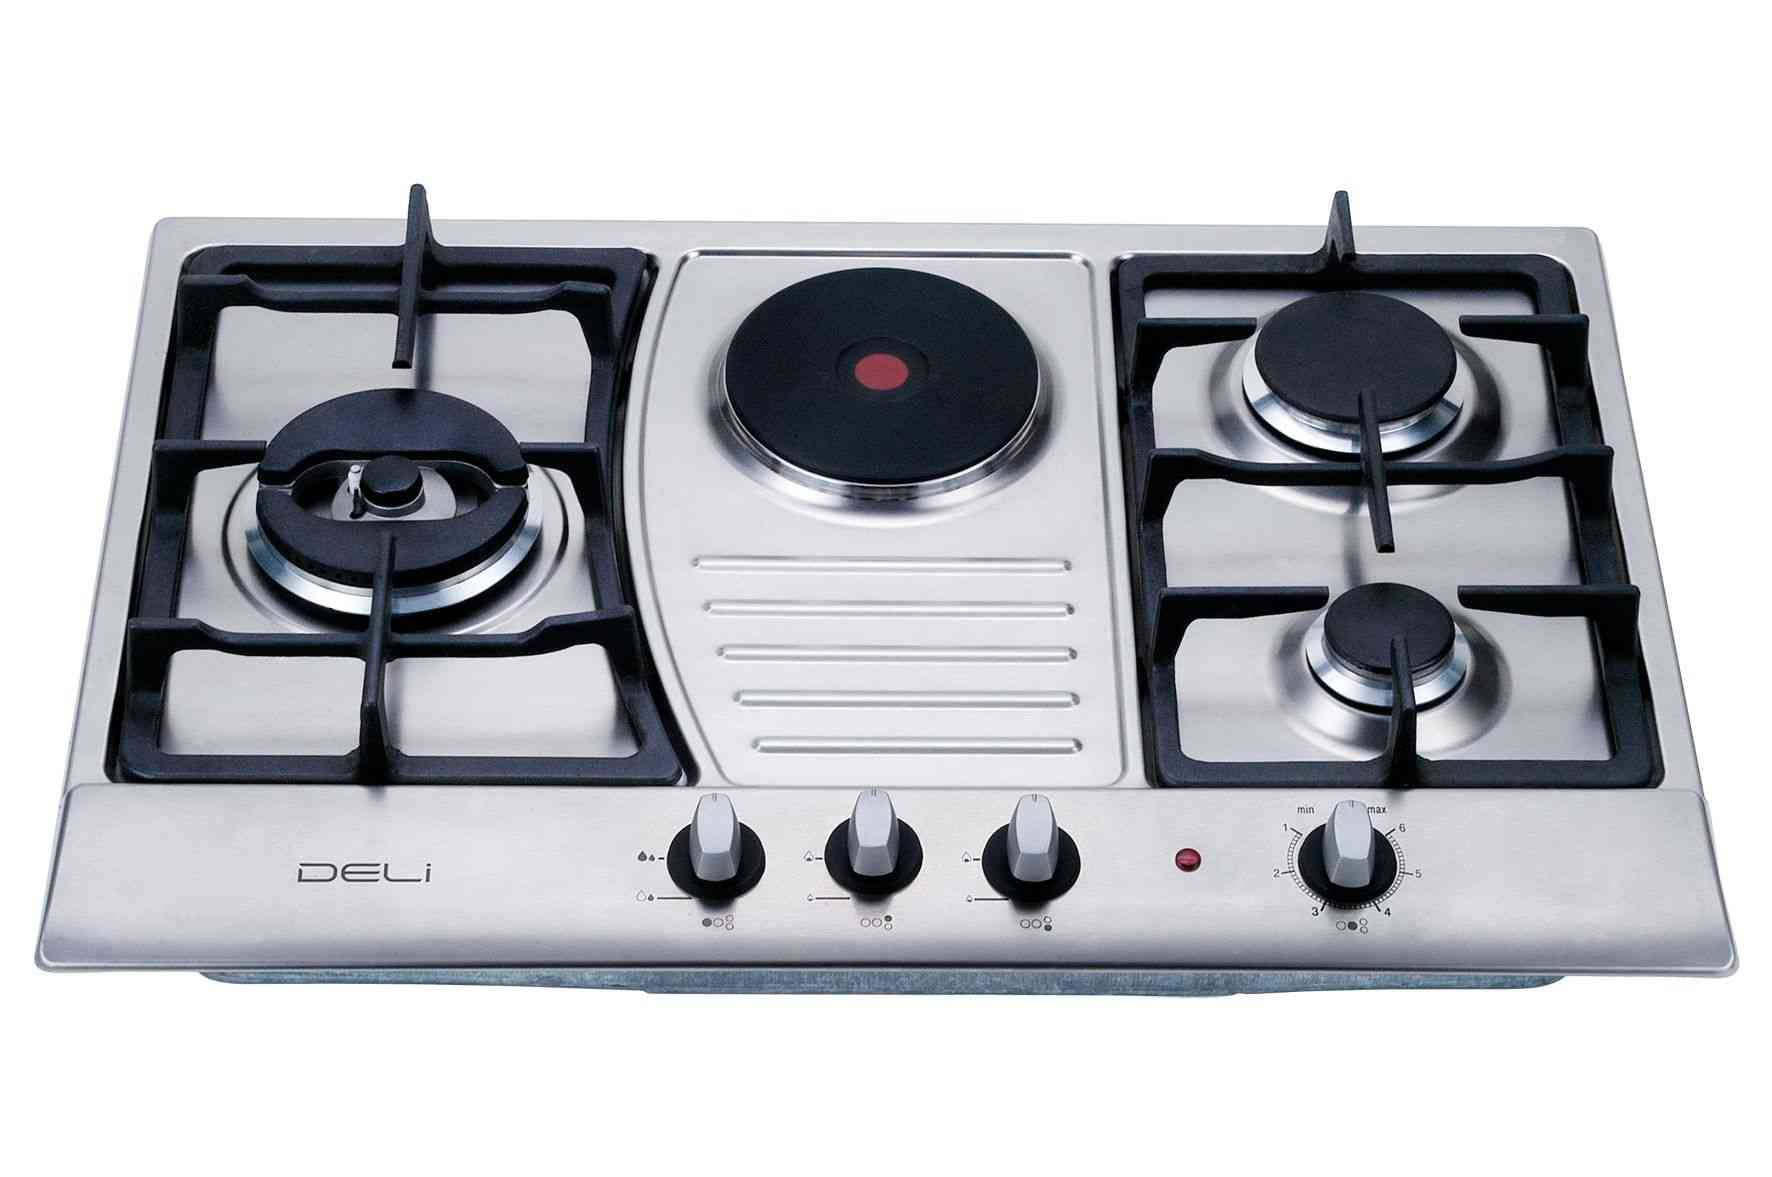 exceptional Indian Kitchen Appliances #7: Sunflame Gas Stoves Hobs Buy Cooktops Online Snapdeal